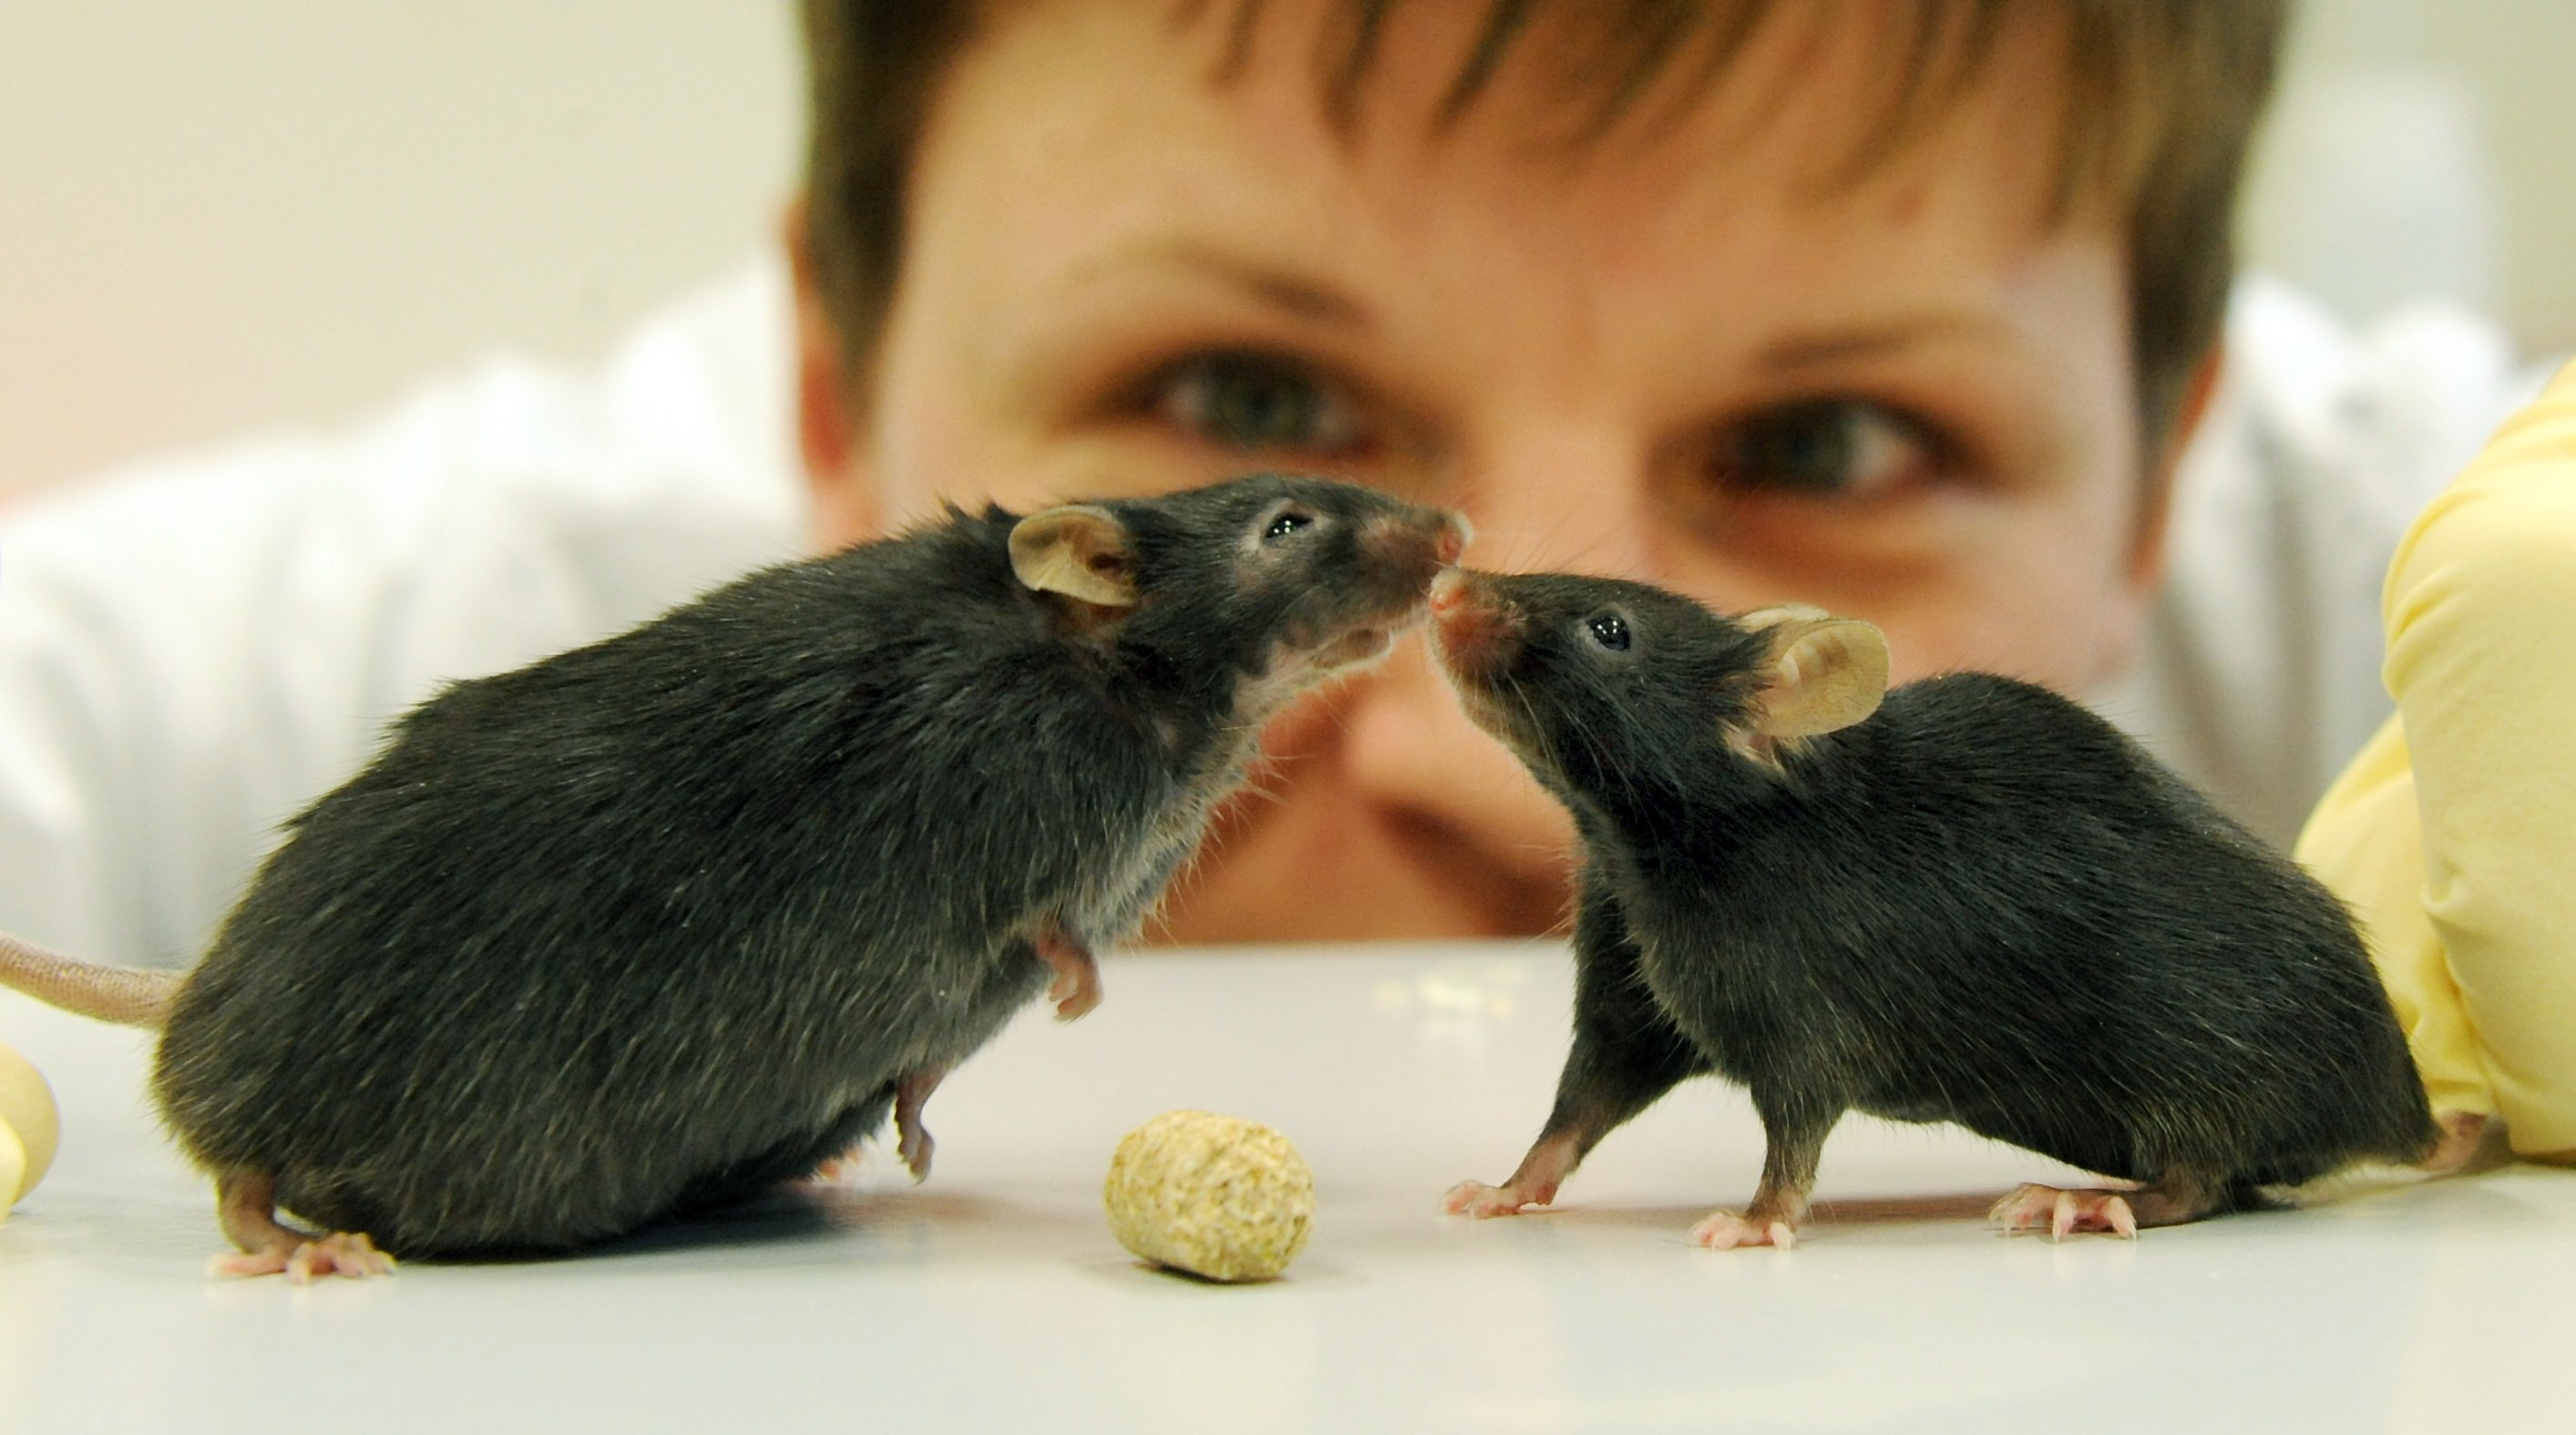 """is animal testing necessary Those in favor of animal testing argue that experiments on animals are necessary to advance medical and biological knowledge claude bernard, known as the father of physiology, stated that """"experiments on animals are entirely conclusive for the toxicology and hygiene of man."""